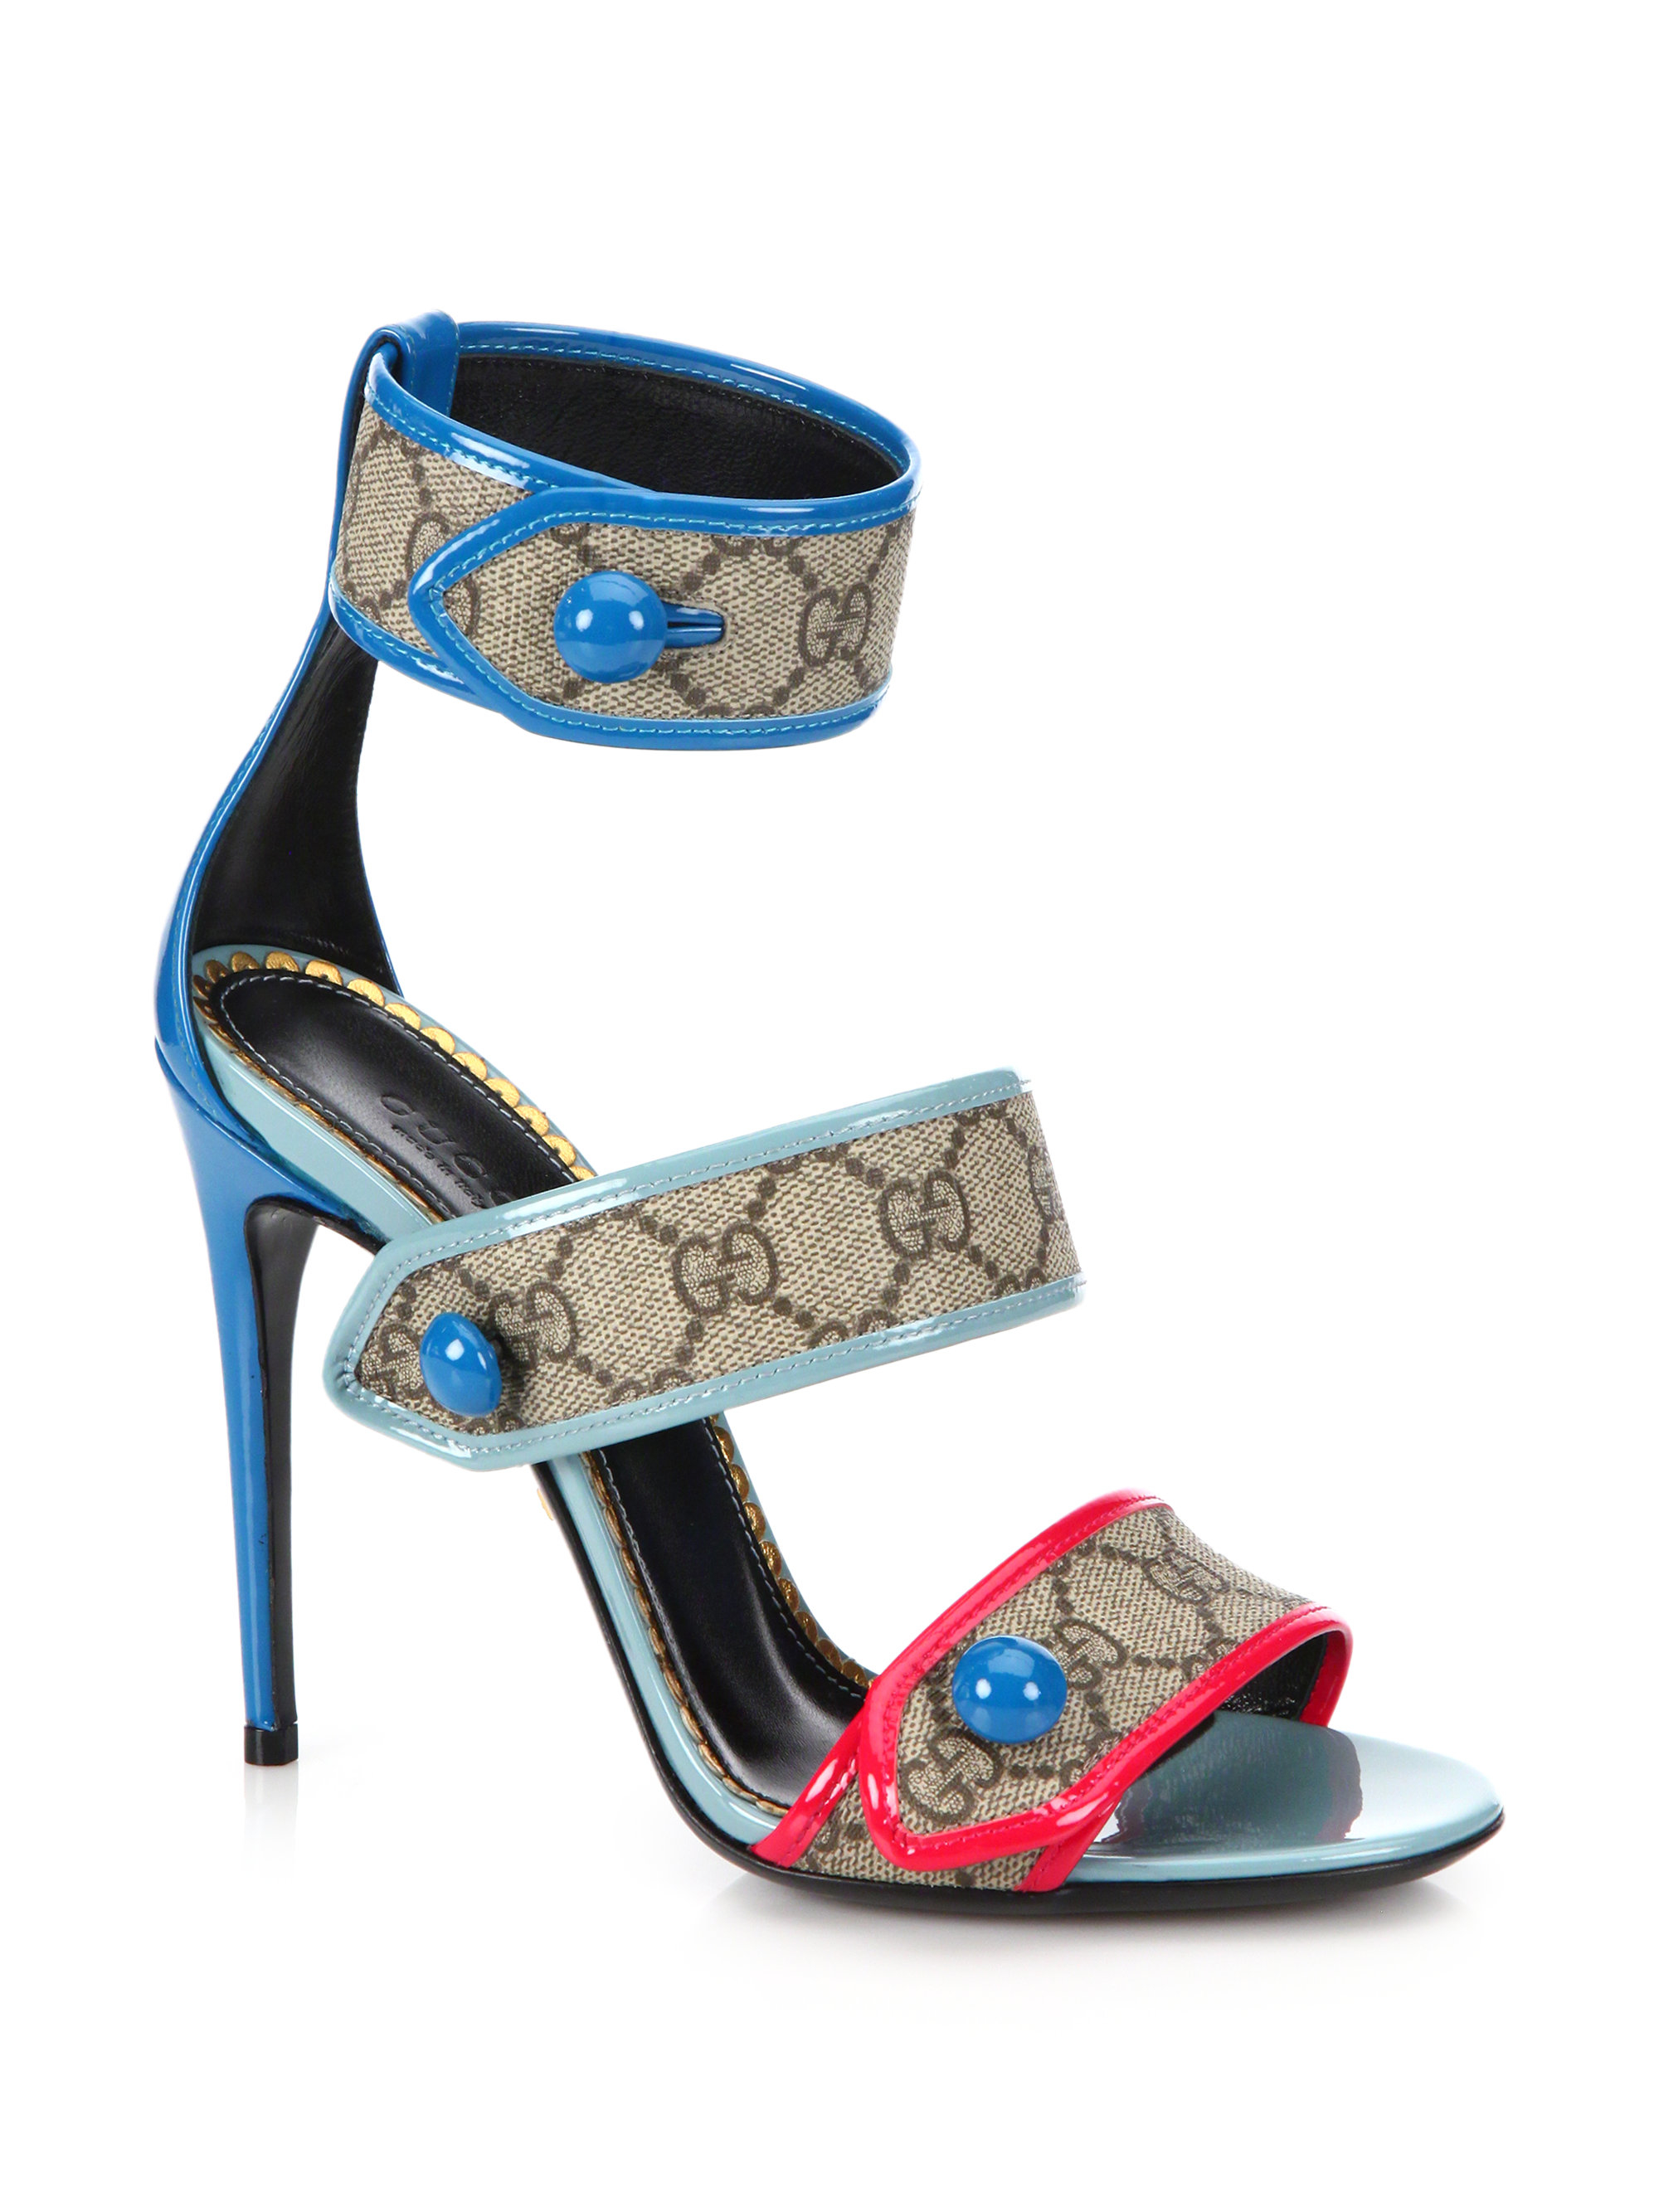 024e5363880 Lyst - Gucci Harleth GG Patent-Leather Sandals